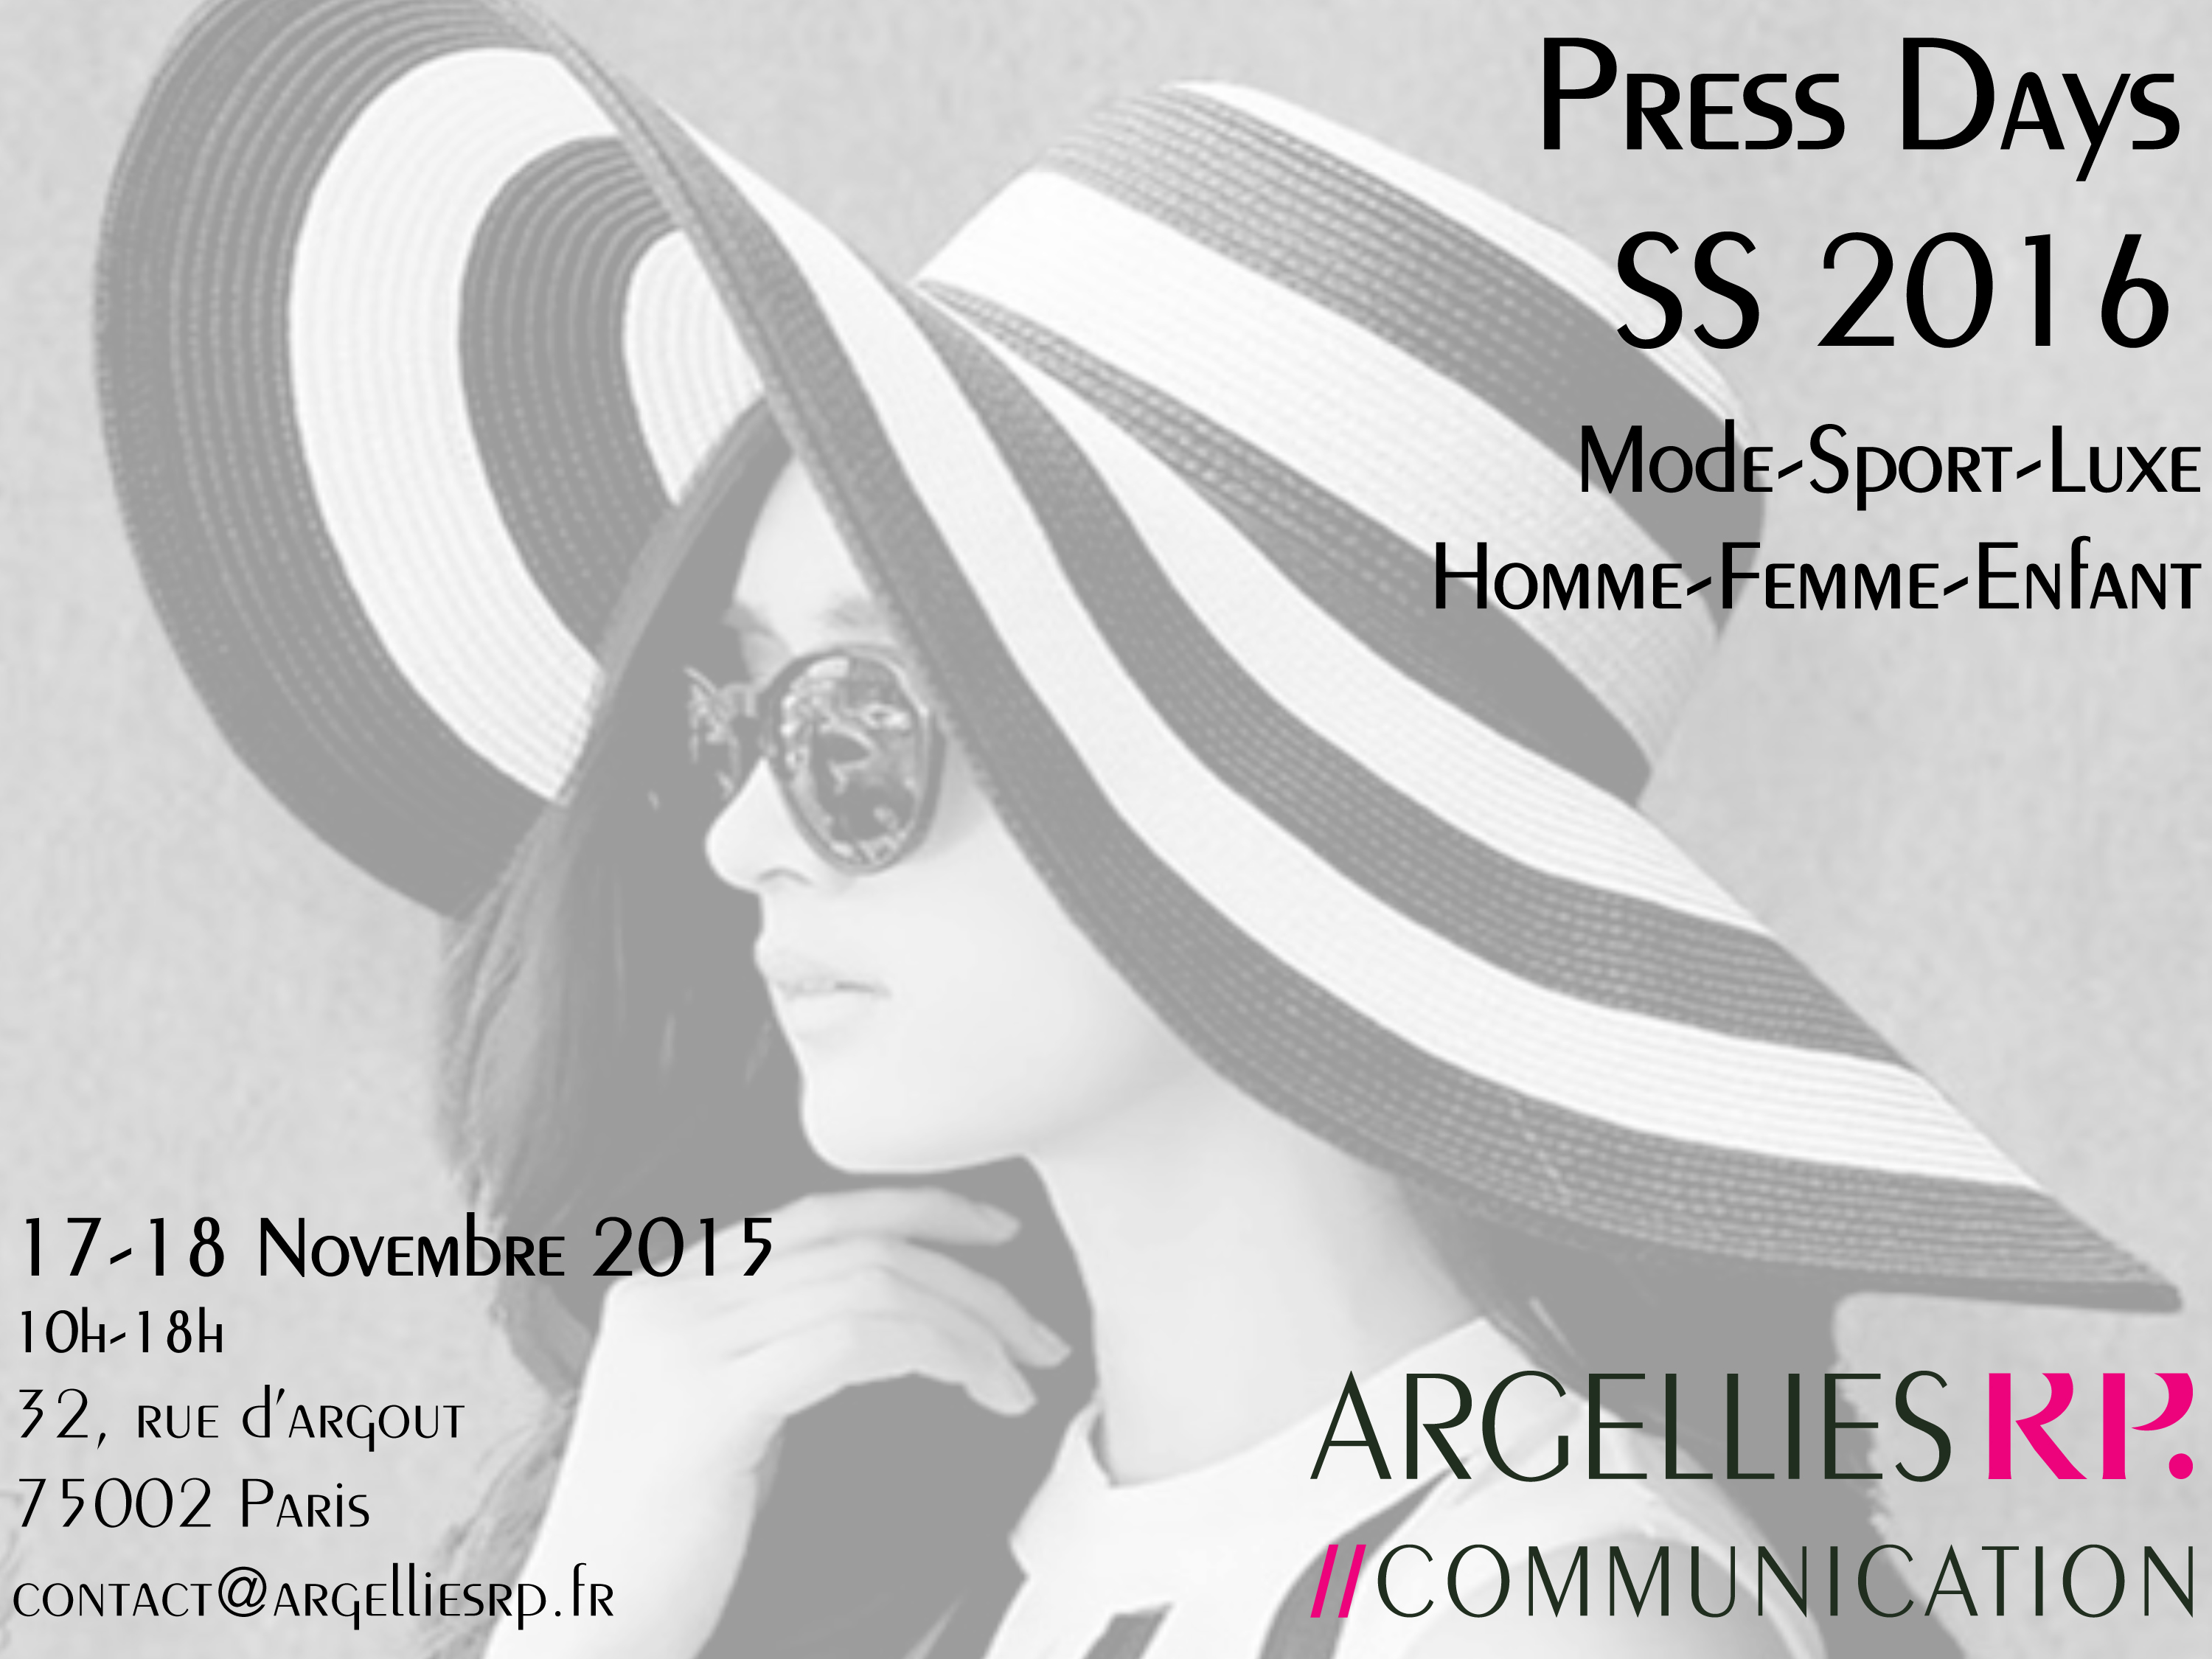 invitation Press Days Argellies RP SS 16